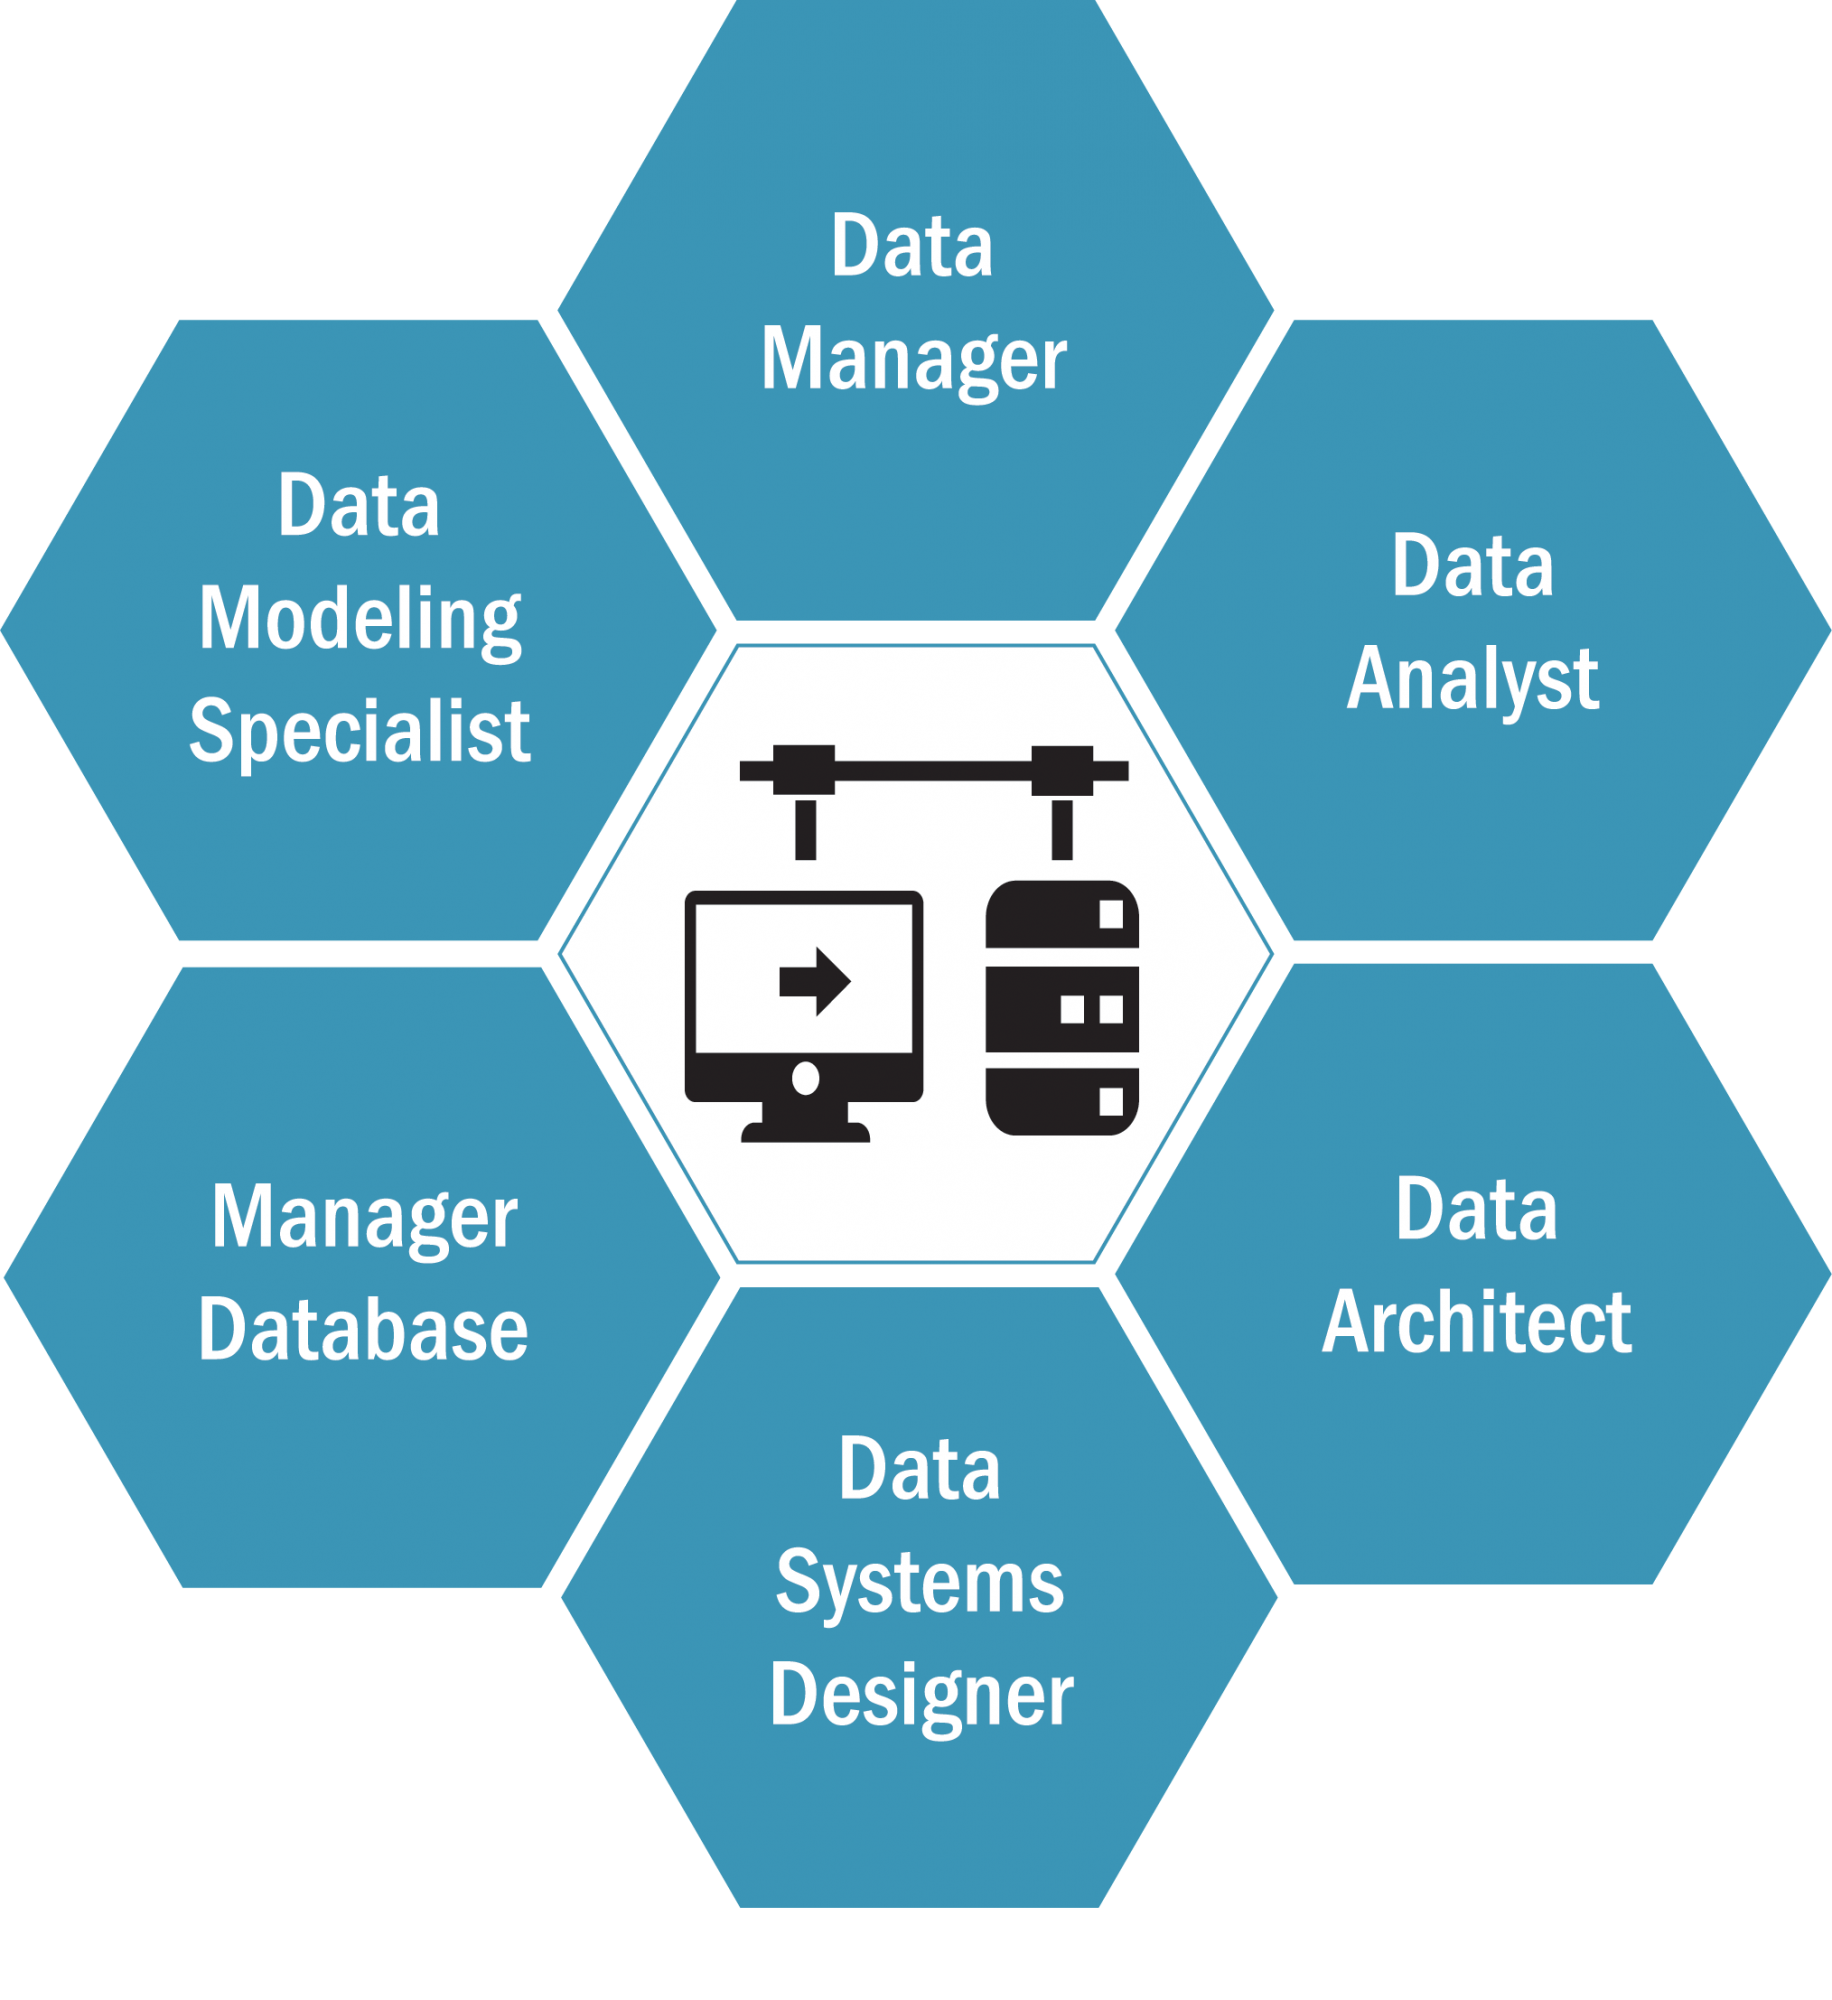 Information Technology Management: Data Management And Analytics